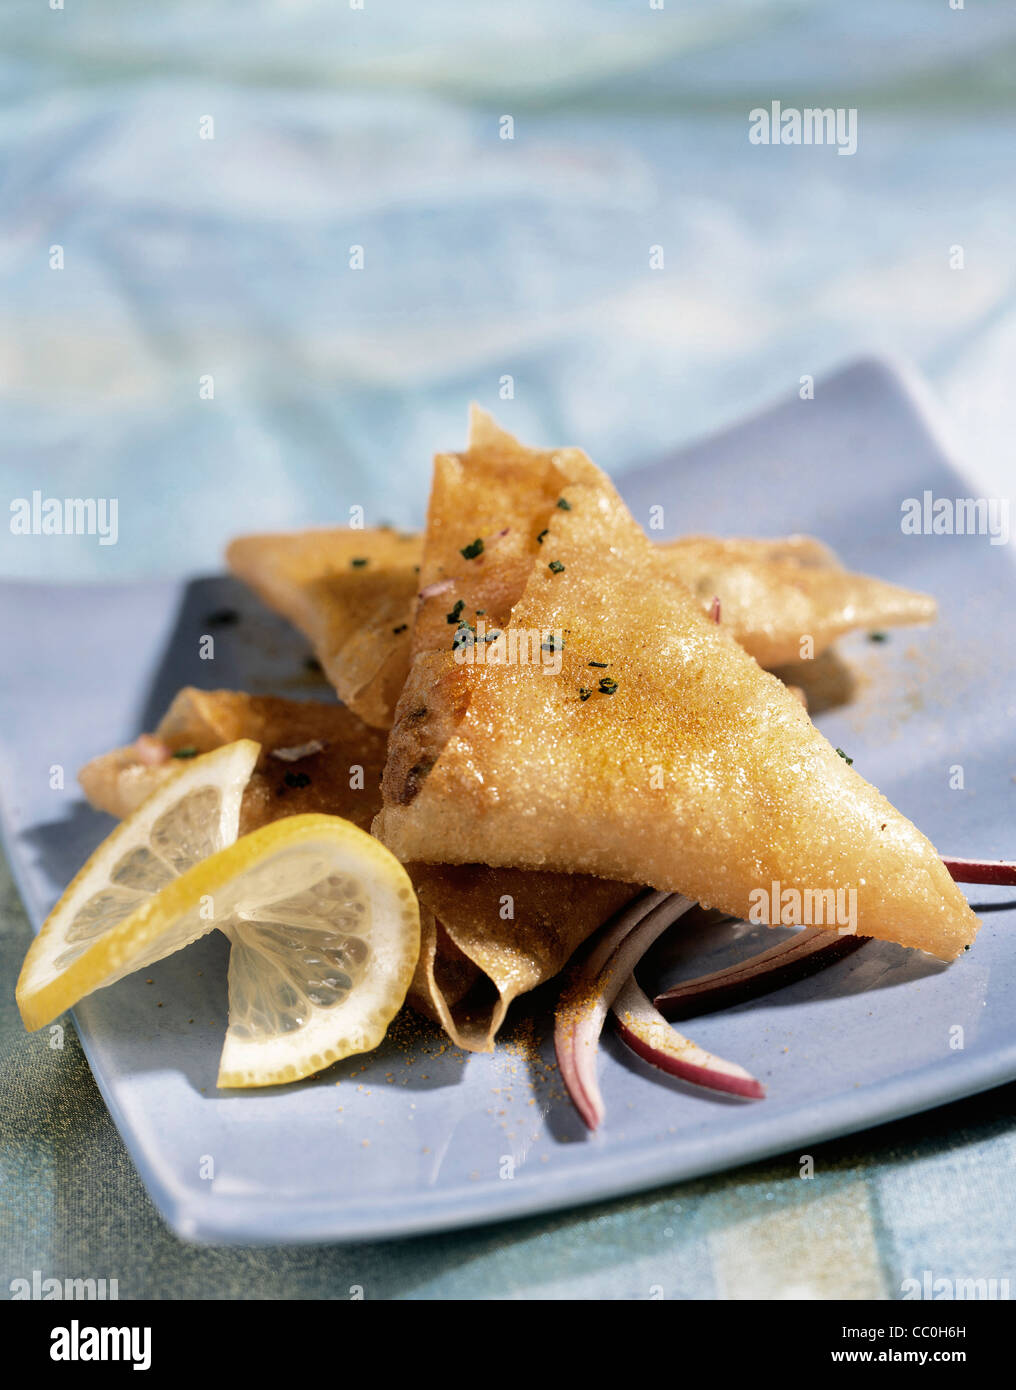 Crispy triangles with ricotta and herbs - Stock Image